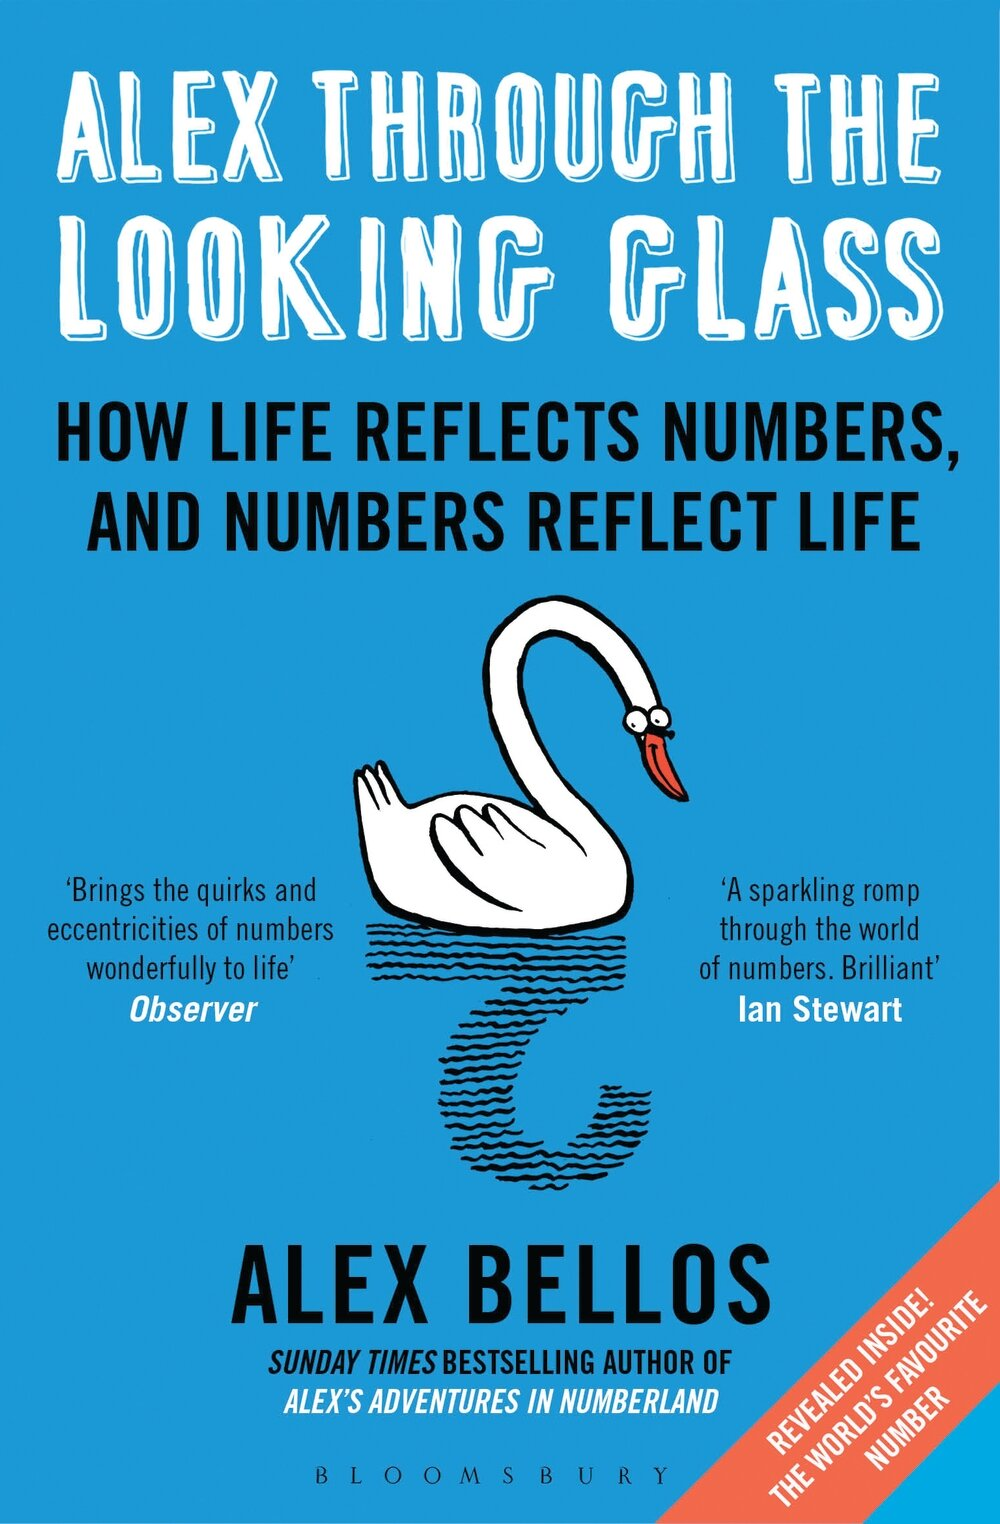 LOOKINGGLASS - My second book continues my international and historical journey into mathematical ideas. It includes material on areas such as on trigonometry, conic sections, imaginary numbers, the exponential constant, calculus, logic and cellular automata. Aimed at the general reader, and suitable for students thinking of studying maths at A-level.The book was shortlisted for the Royal Society Science Book Prize.